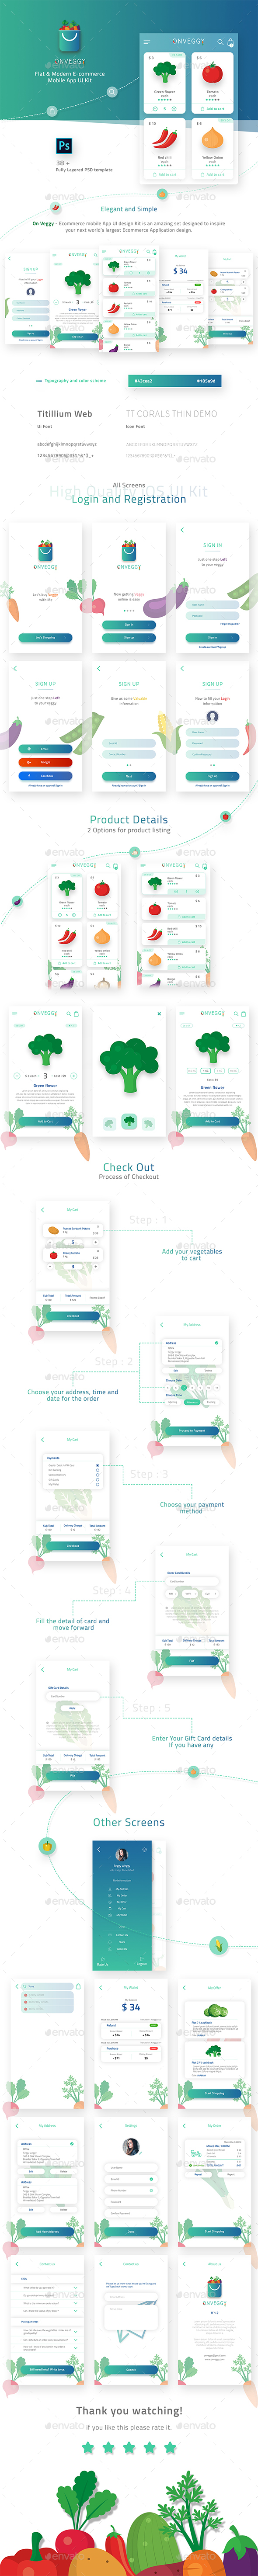 On Veggy - Multipurpose E-commerce App UI Kit - User Interfaces Web Elements